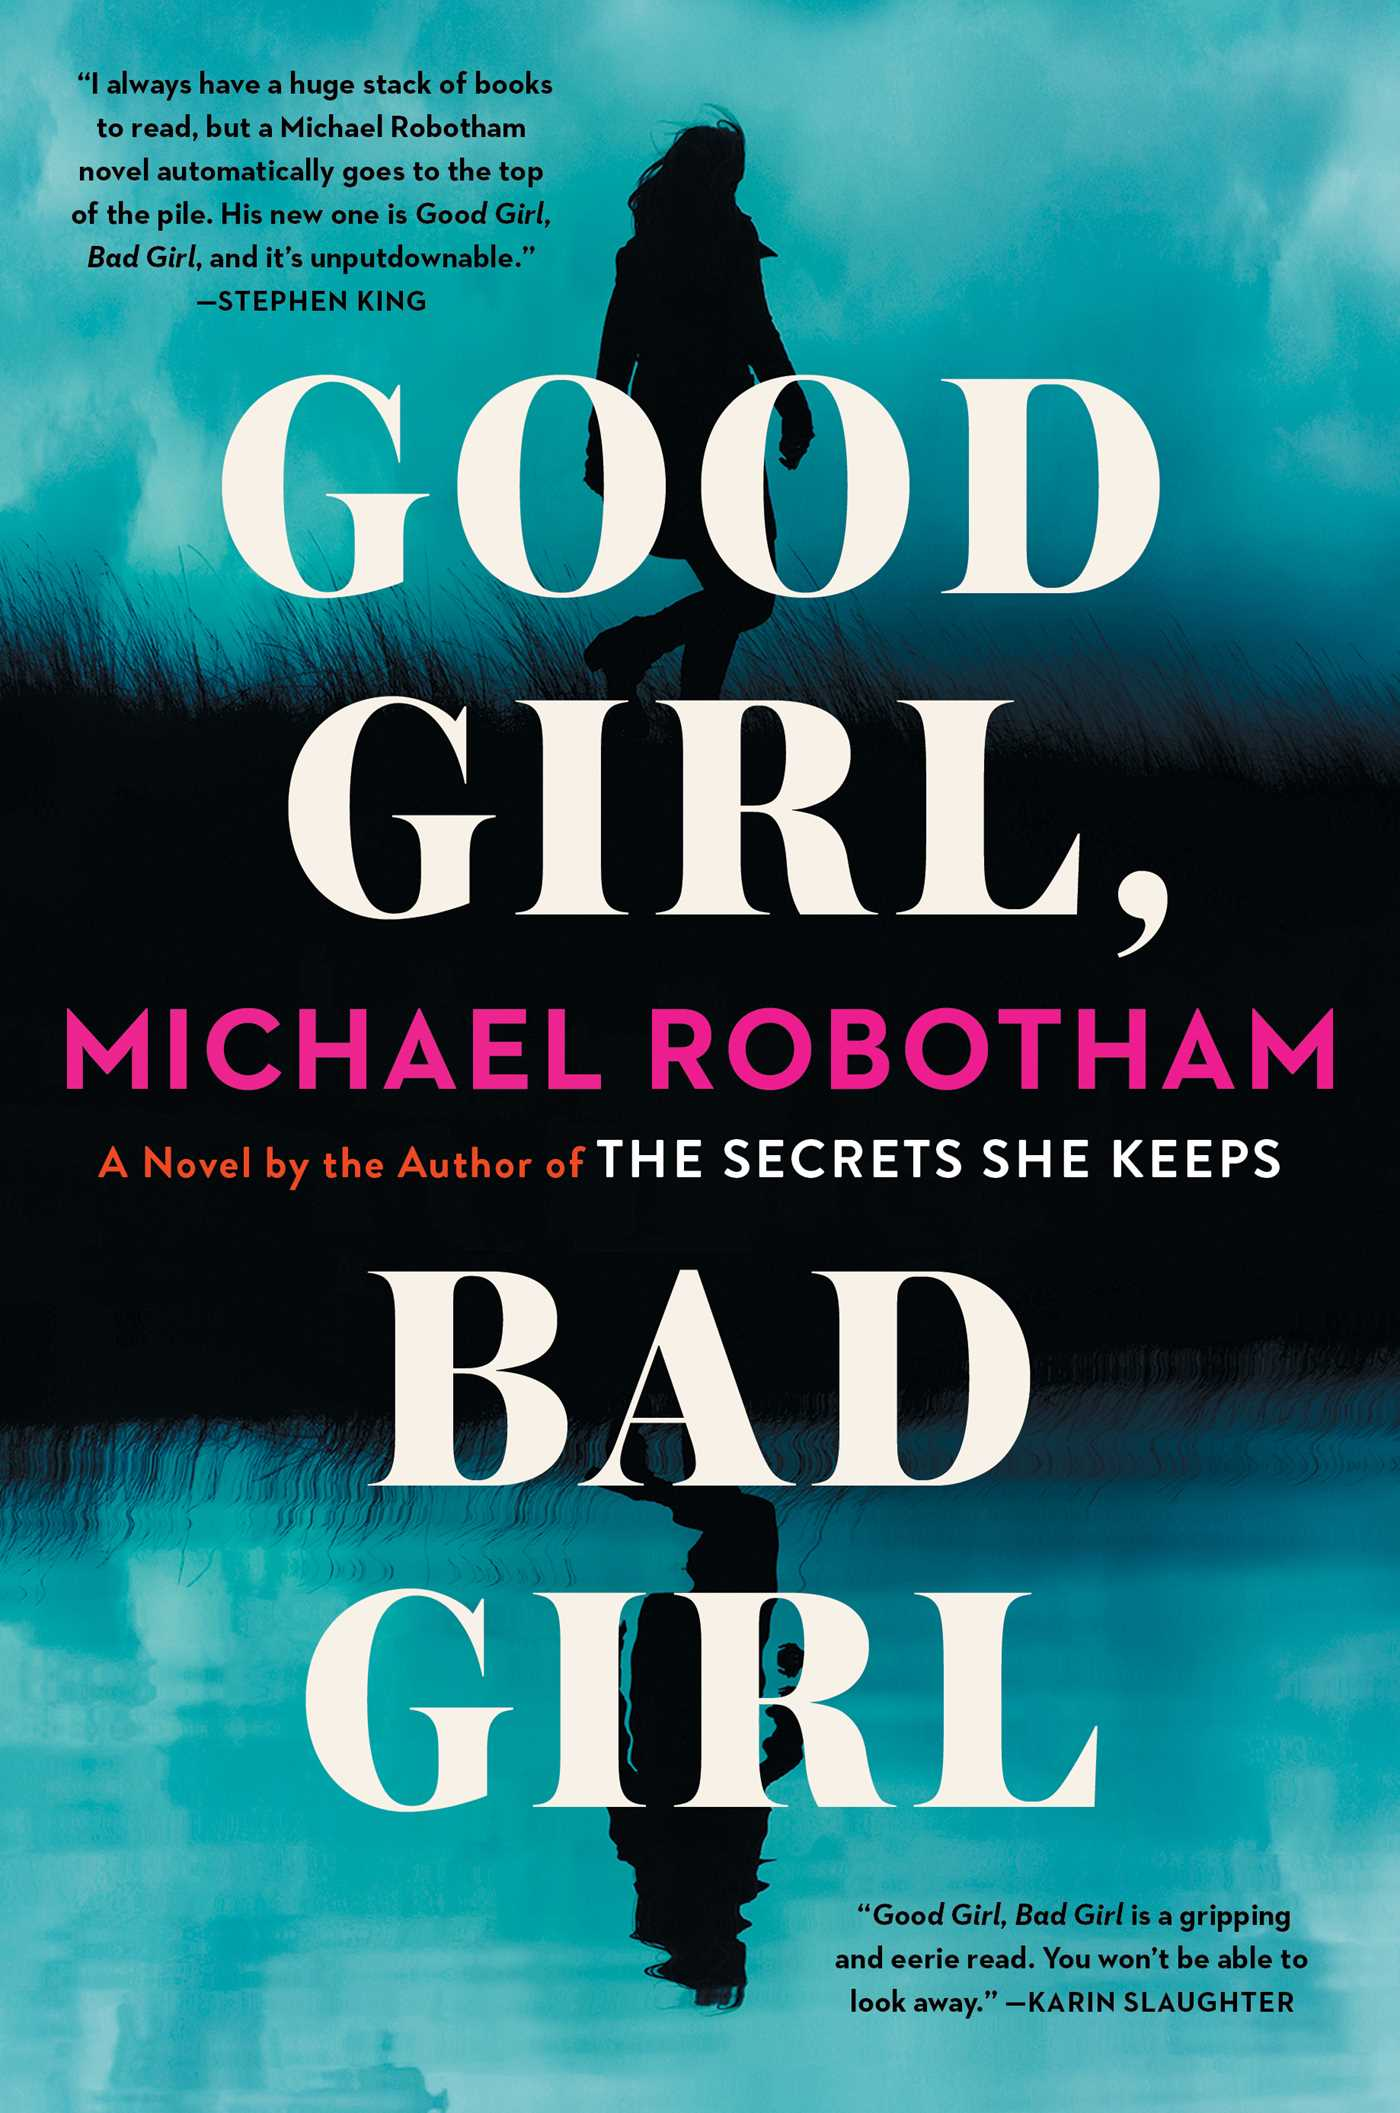 Good Girl, Bad Girl | Book by Michael Robotham | Official